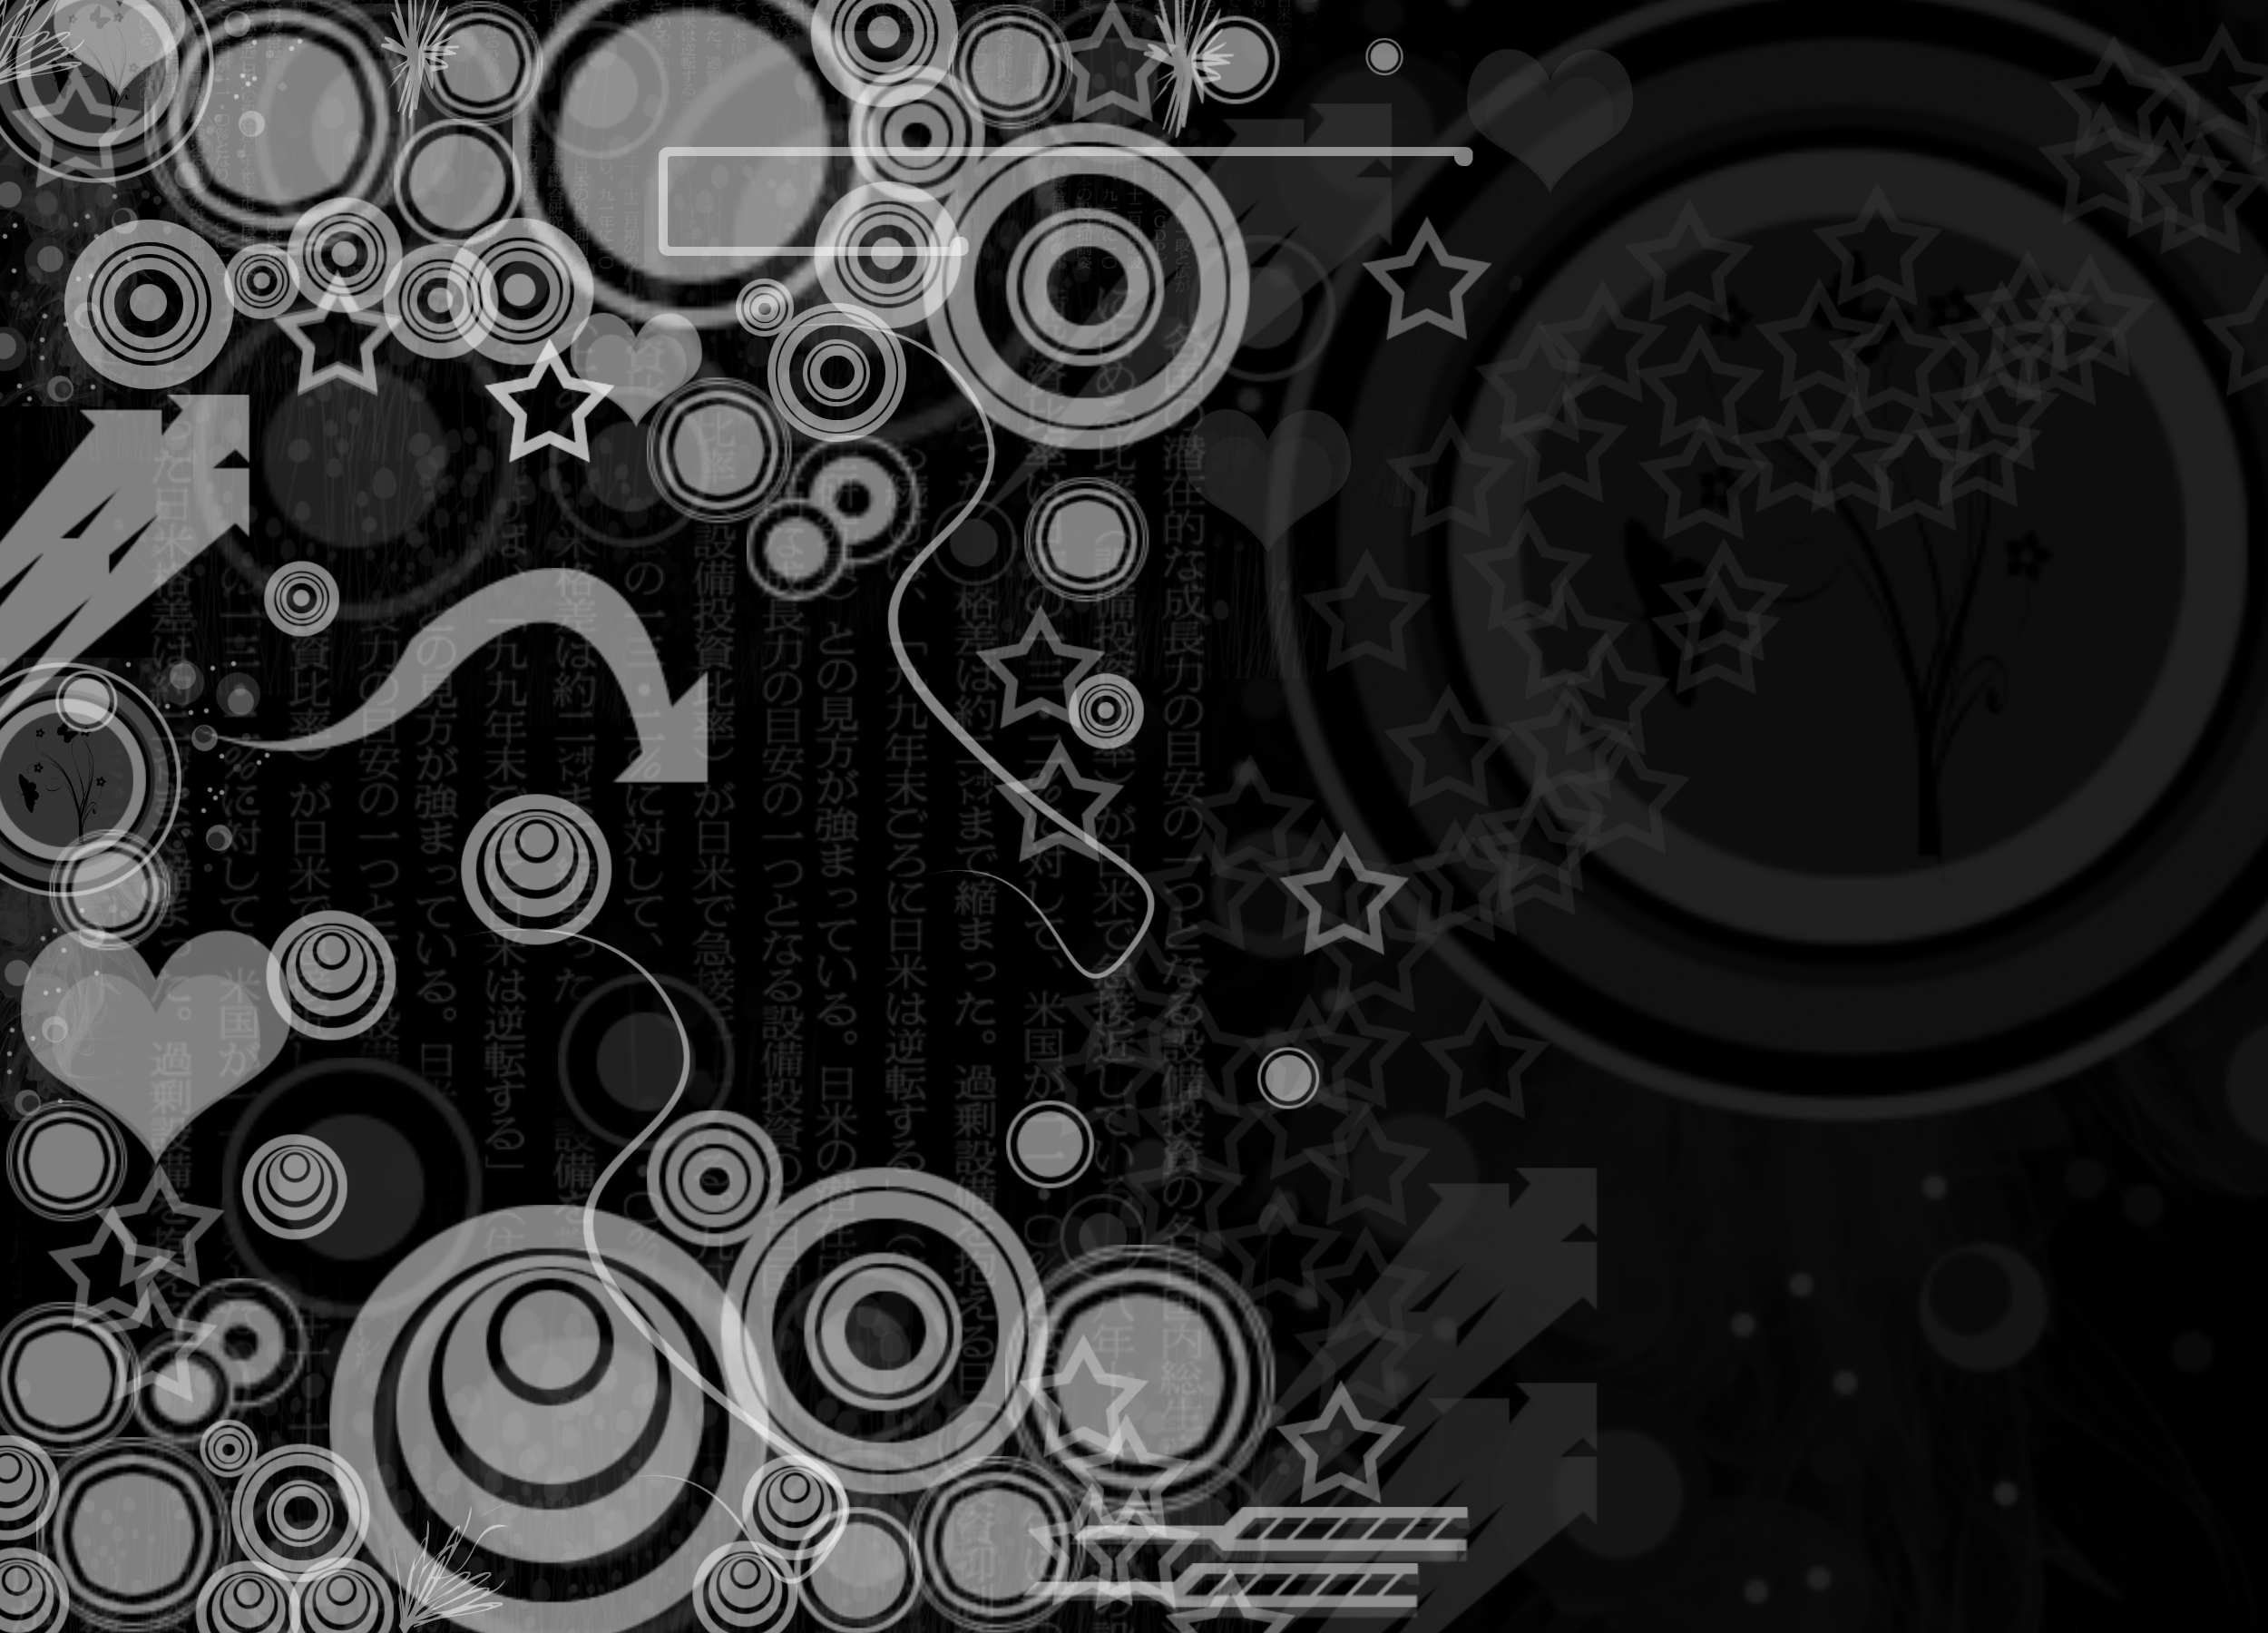 11 Black And White Wallpaper Designs Images